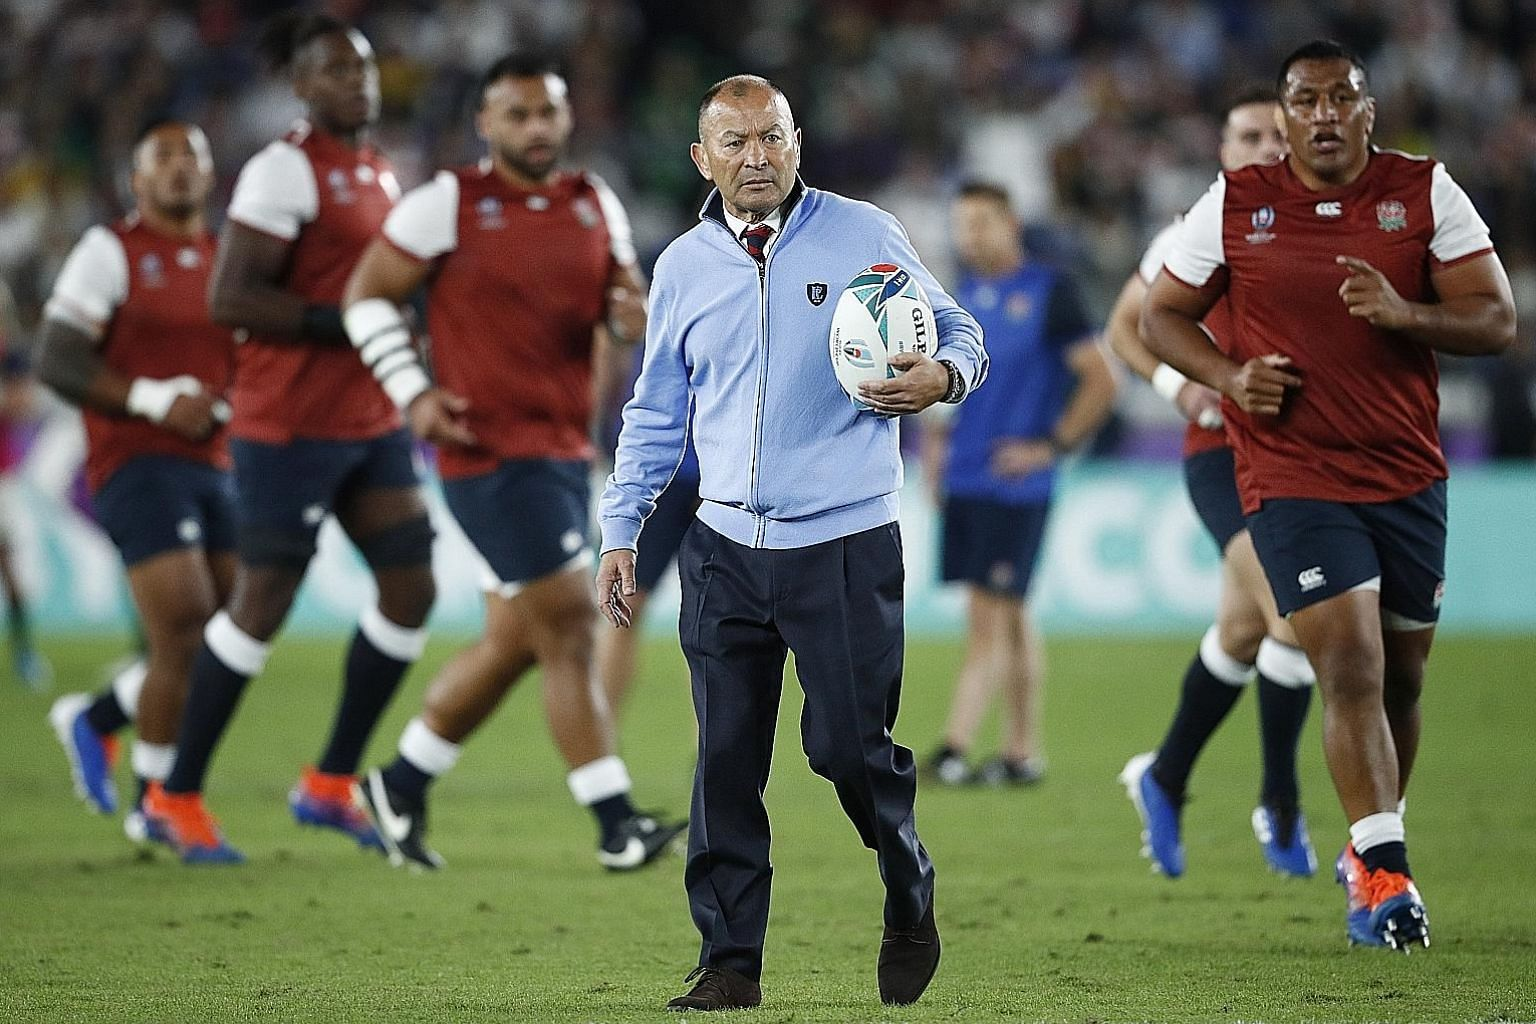 England coach Eddie Jones is likely to be given the opportunity by the Rugby Football Union, the nation's governing body, to coach the team for the 2023 World Cup but he has yet to discuss his future.